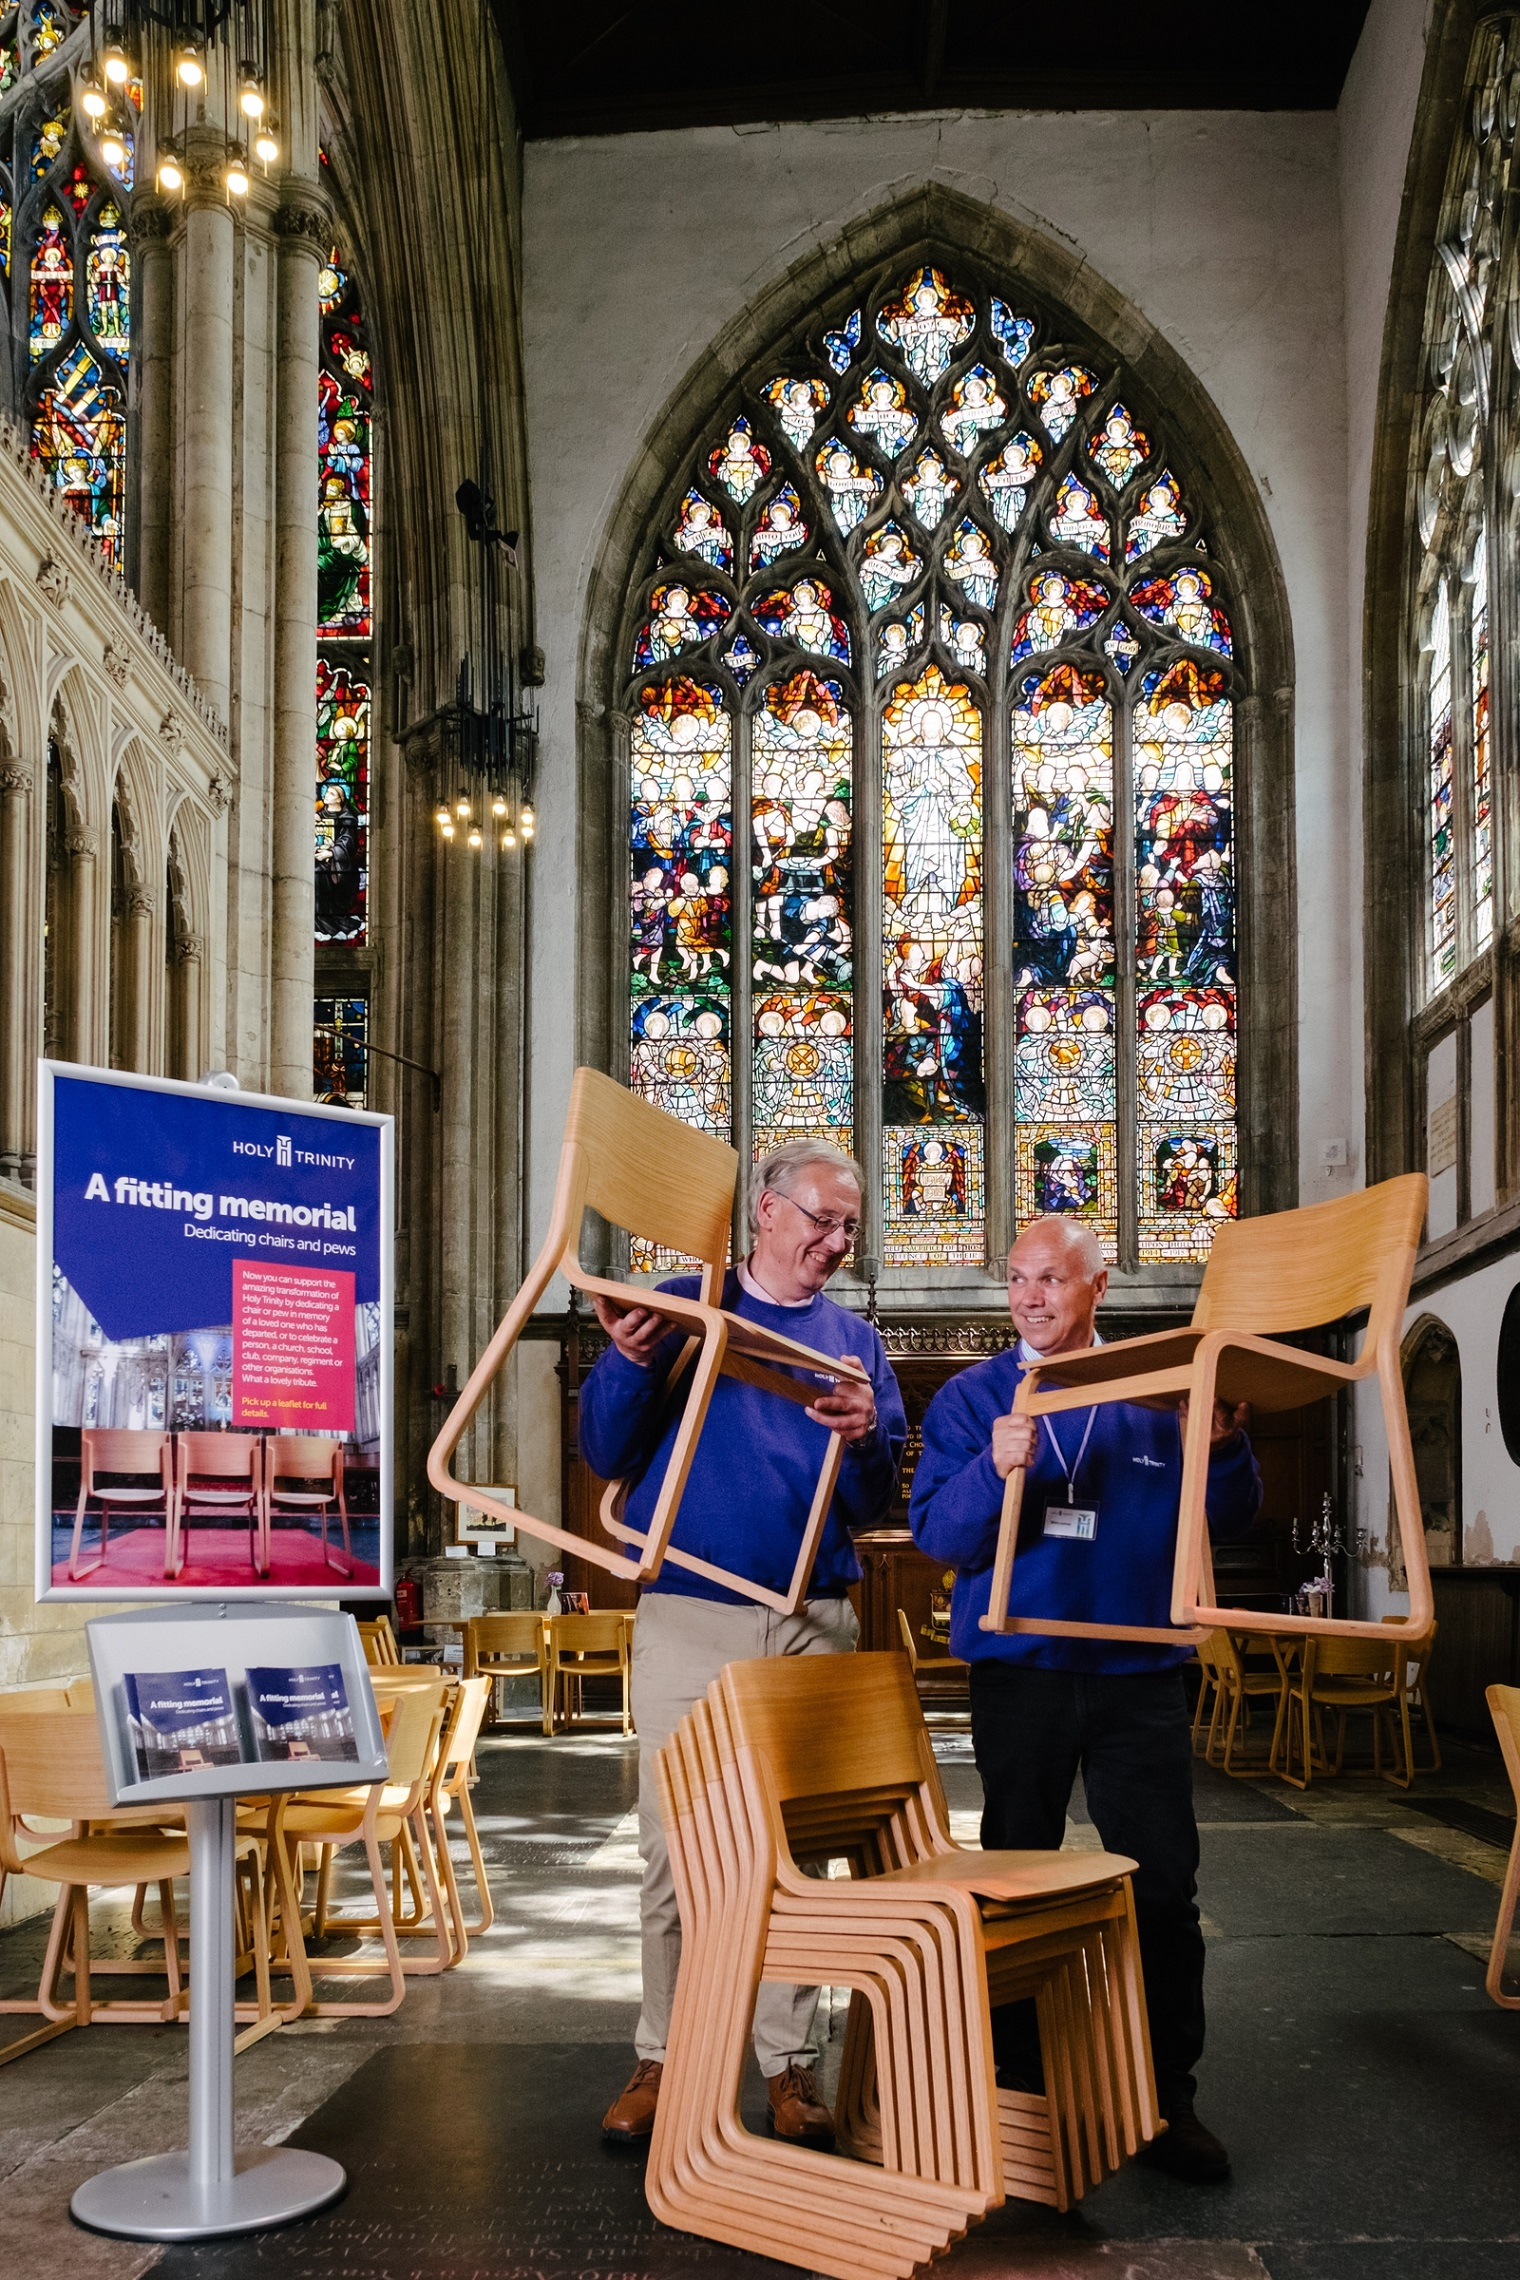 Volunteer welcomers Ray Taylor, left, and John Lawson will be encouraging visitors to Holy Trinity Church to dedicate a chair to support the transformation of the 700-year-old church.